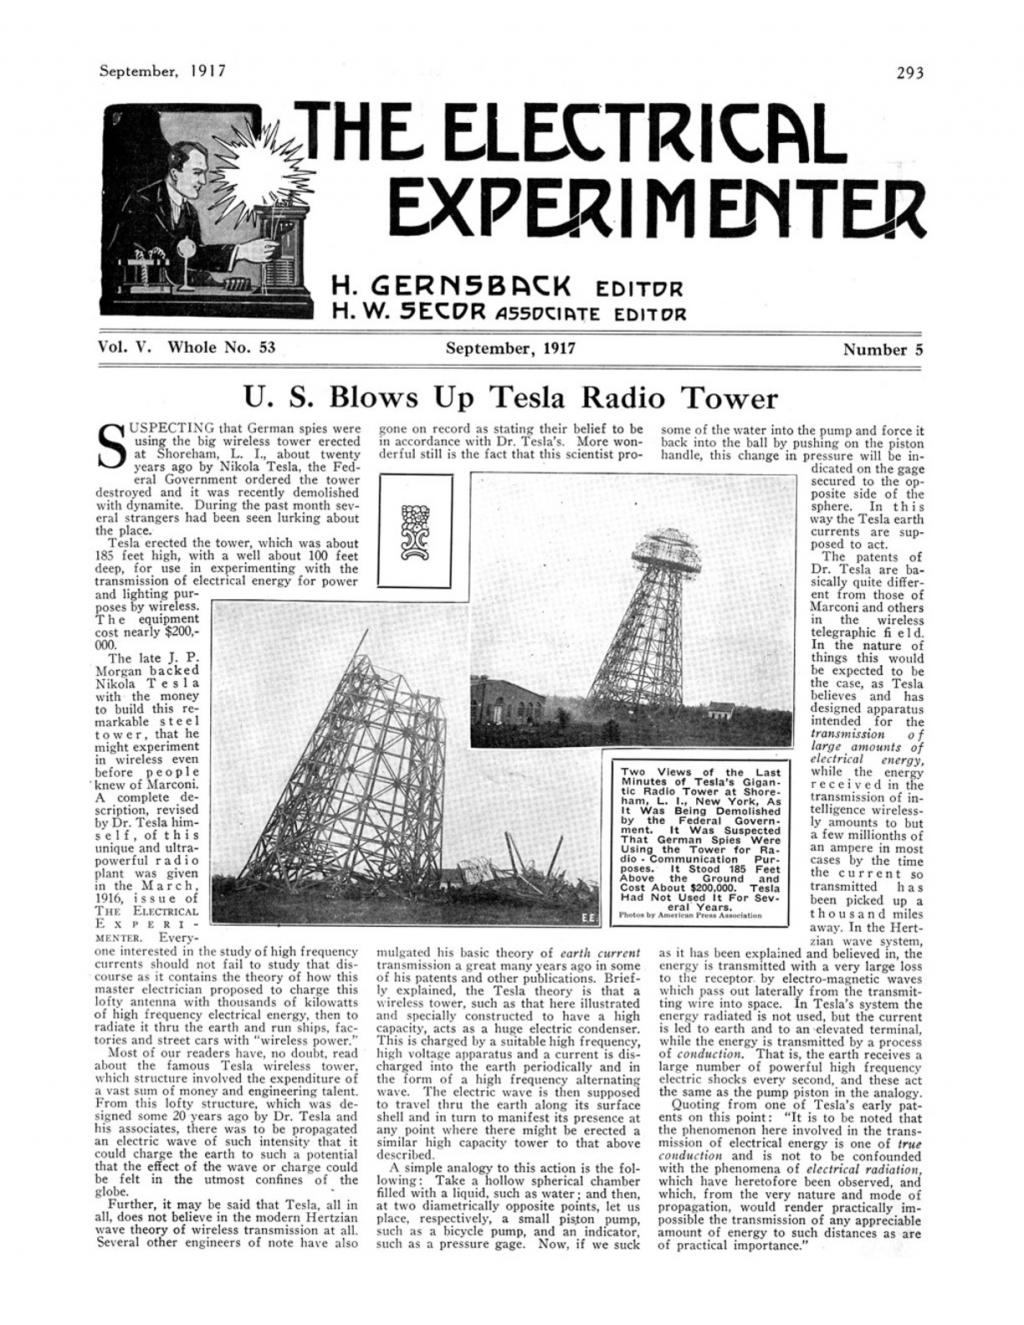 Preview of U. S. Blows Up Tesla Radio Tower article